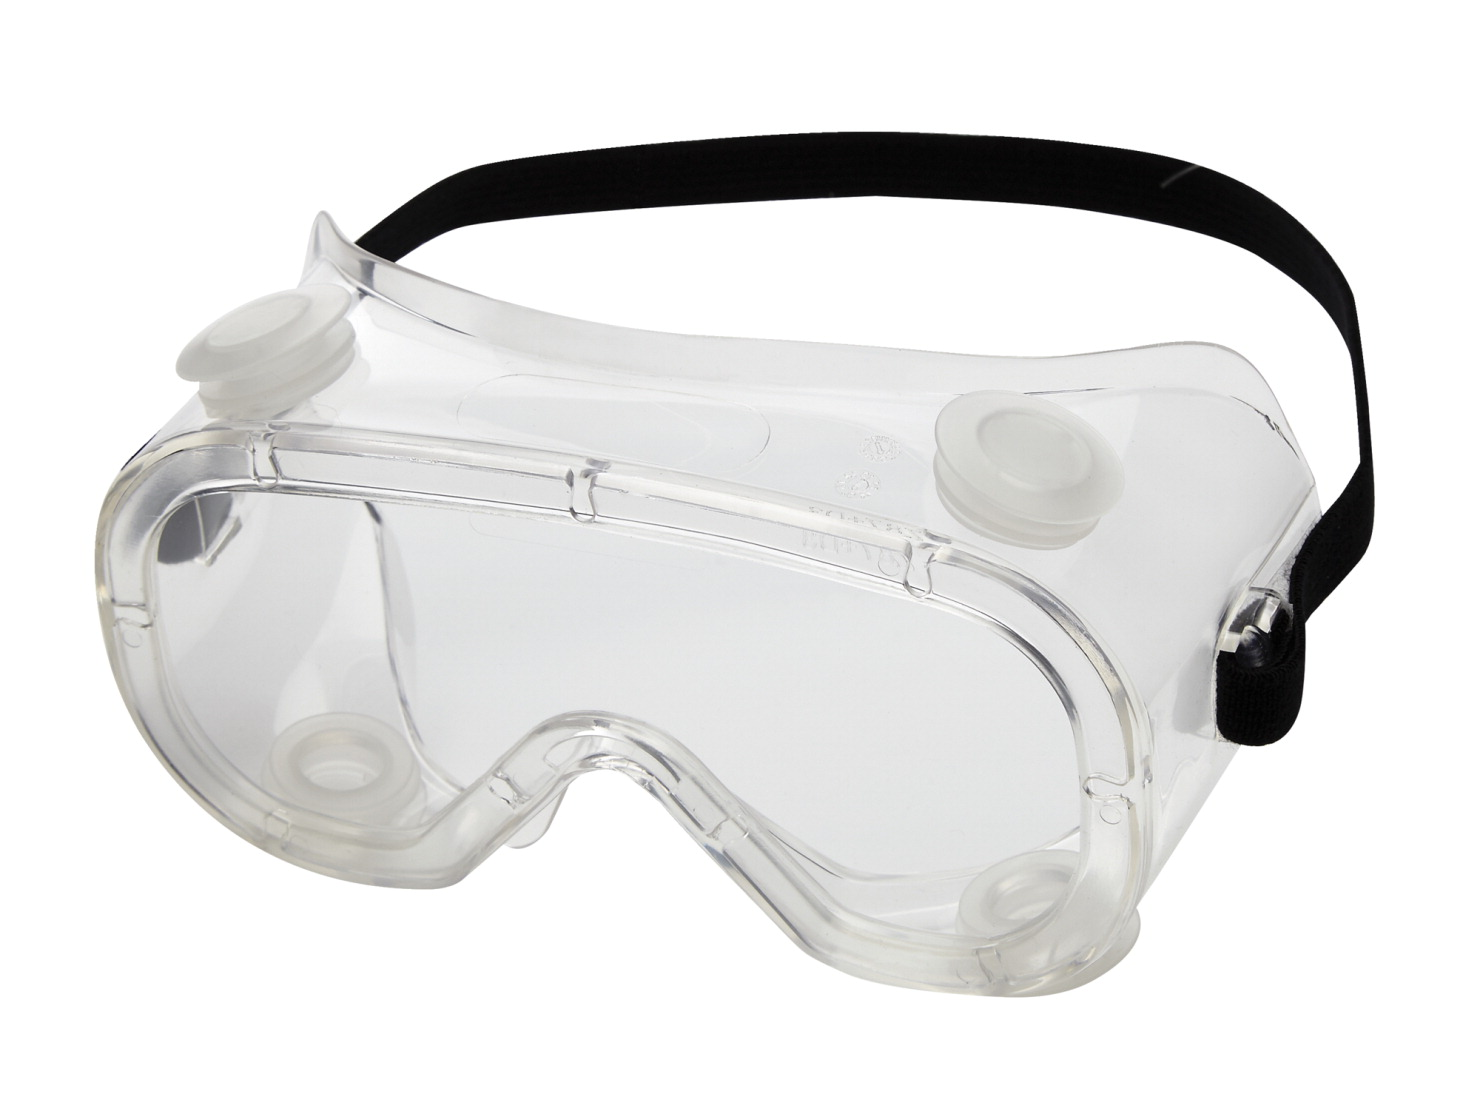 Frey Scientific Economy Indirect Vent Chemical Splash Safety Goggle